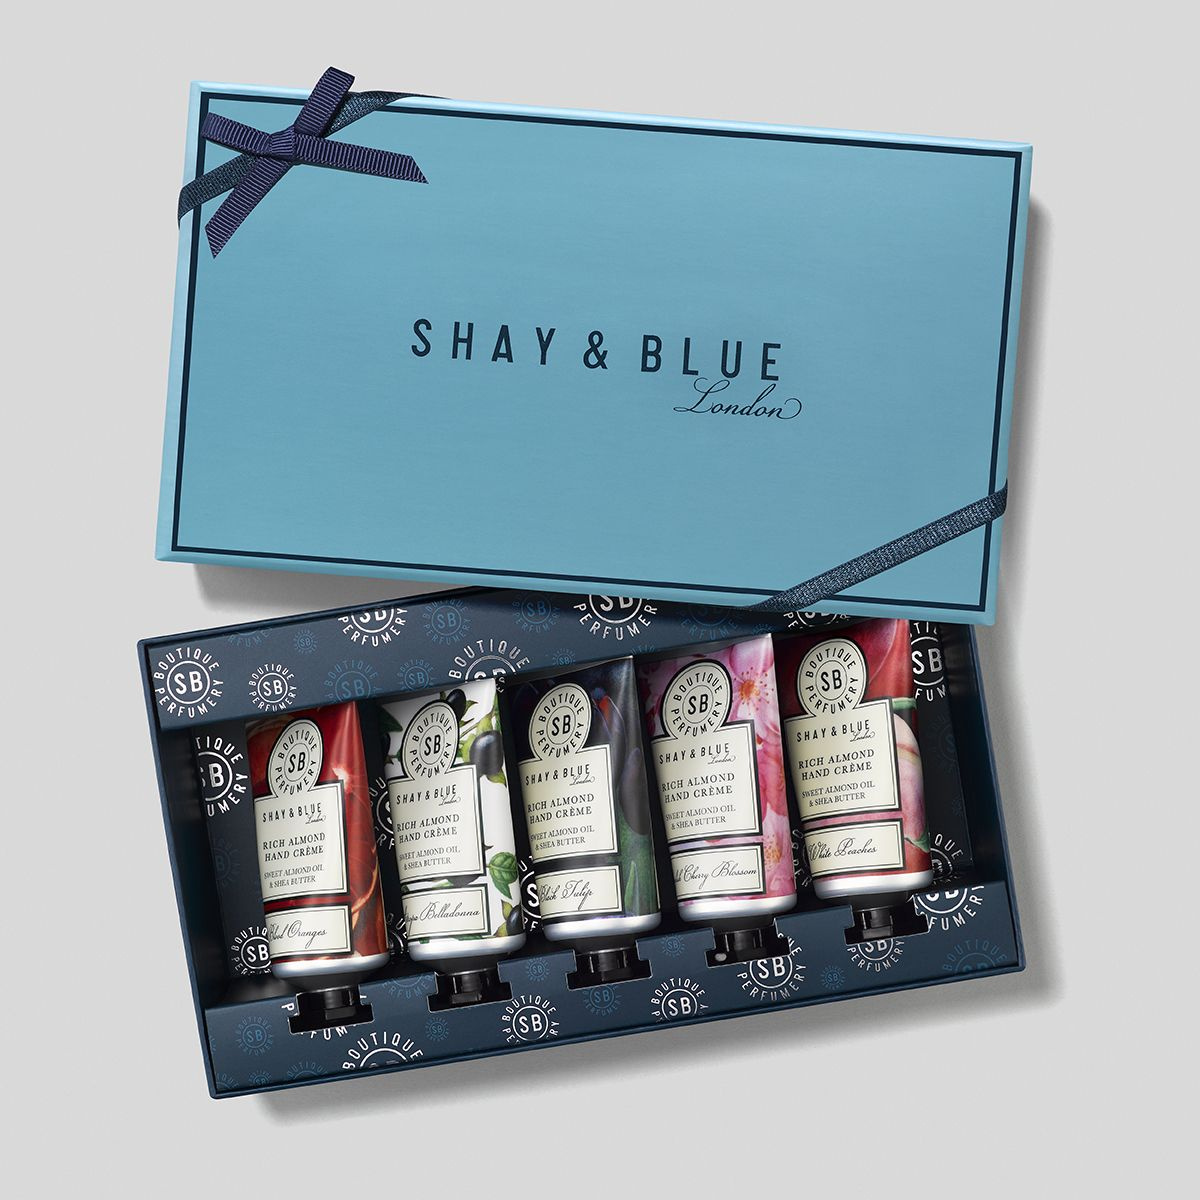 Shay & Blue – Rich Almond Hand Crème - Collection - Handcreme - 5 x 40 ml